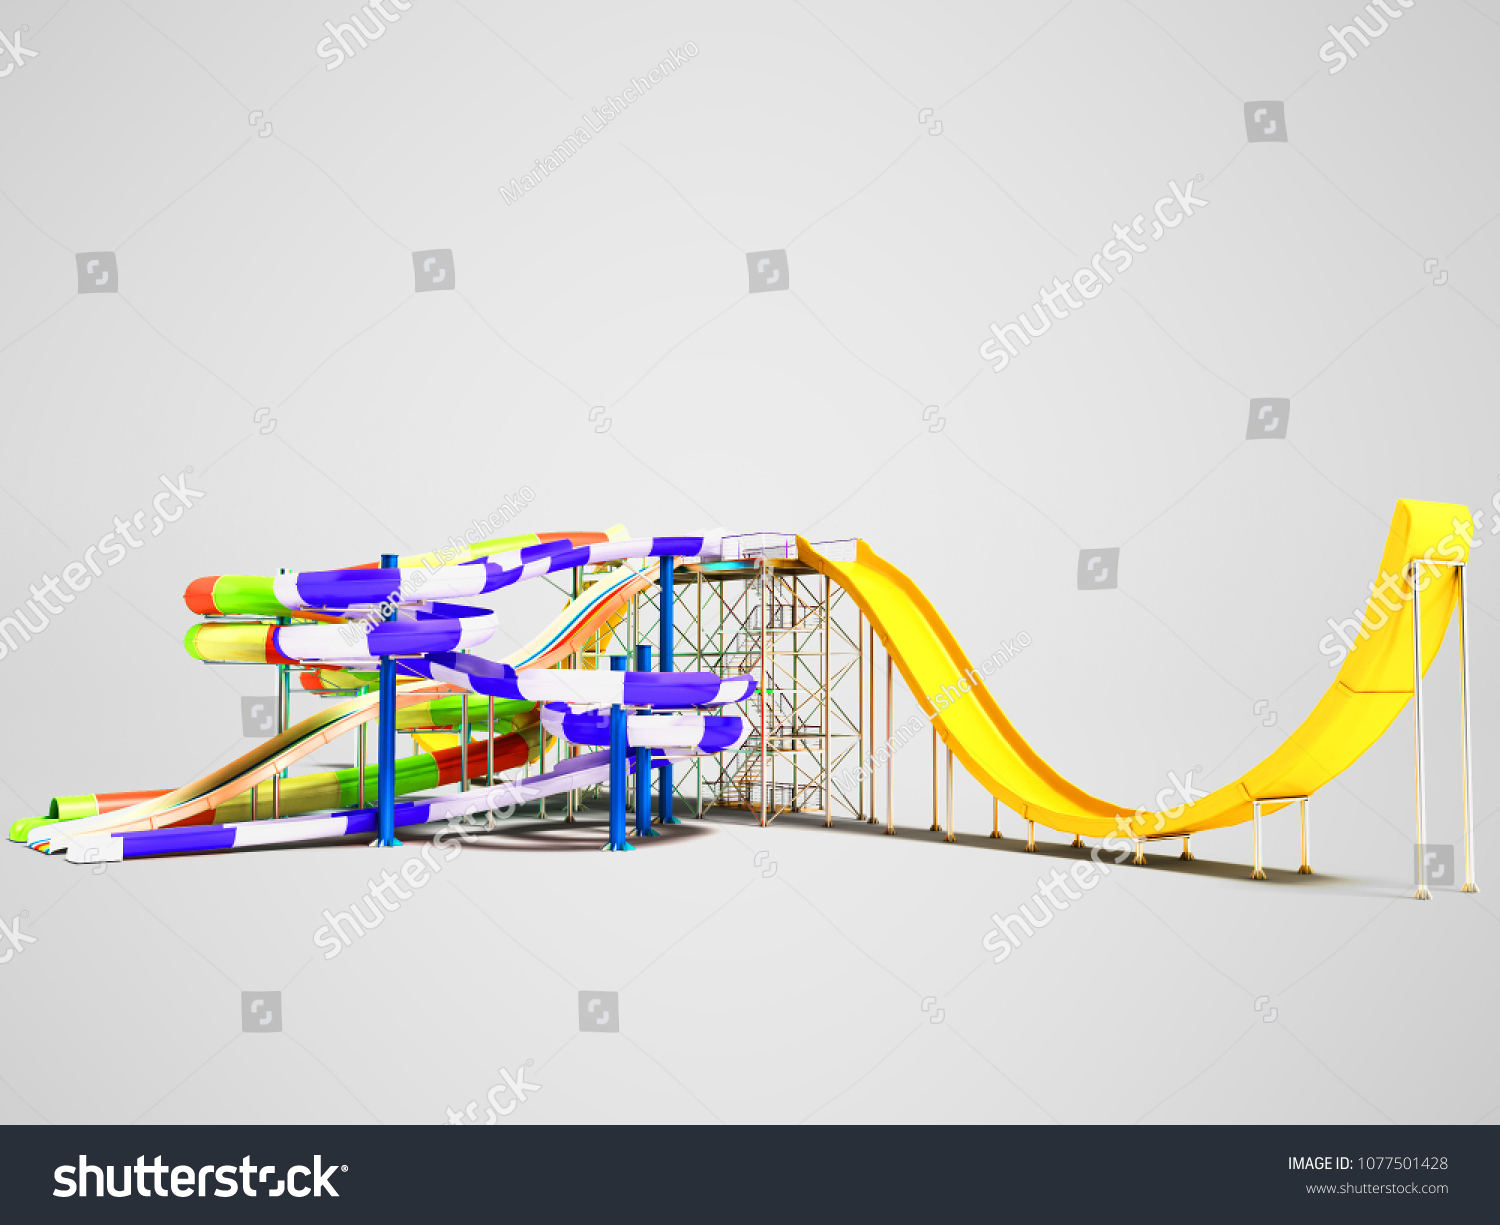 Water Rides Straight Bitter Yellow Roller Stock Illustration Coaster Diagram With And Spring On The Right 3d Render